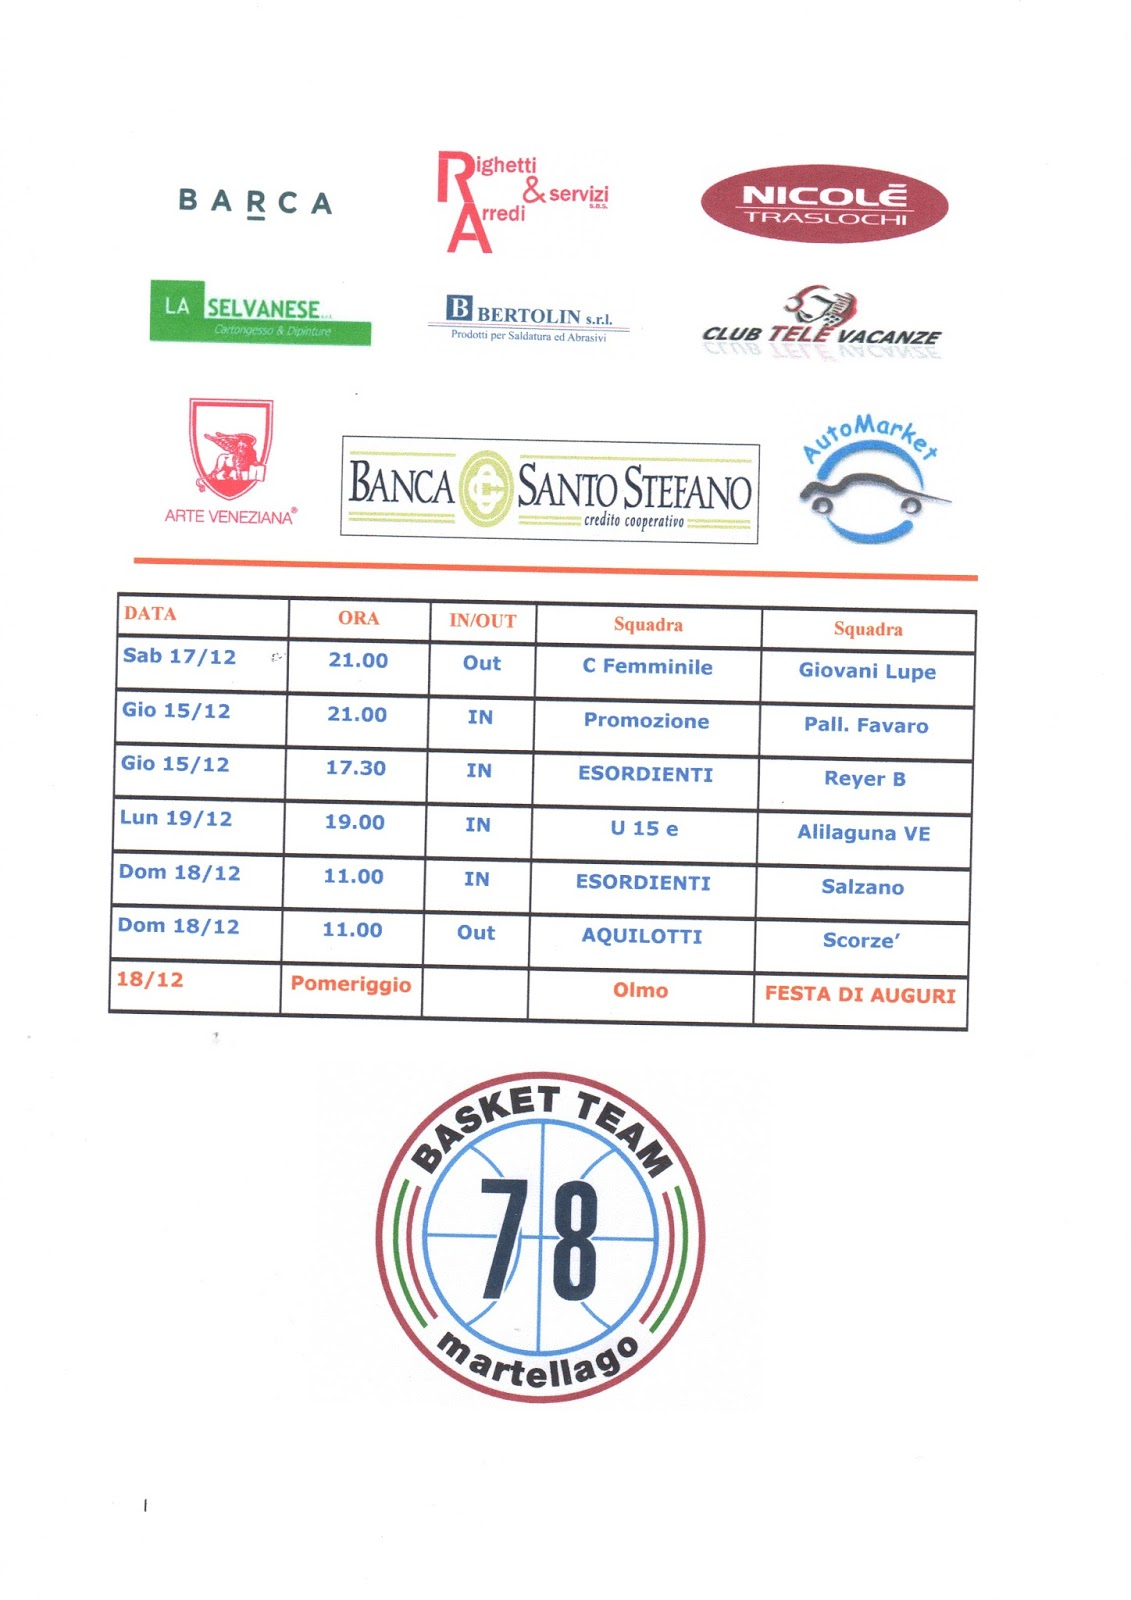 Arte Veneziana Srl Martellago A D Team 78 Basket Martellago 2016